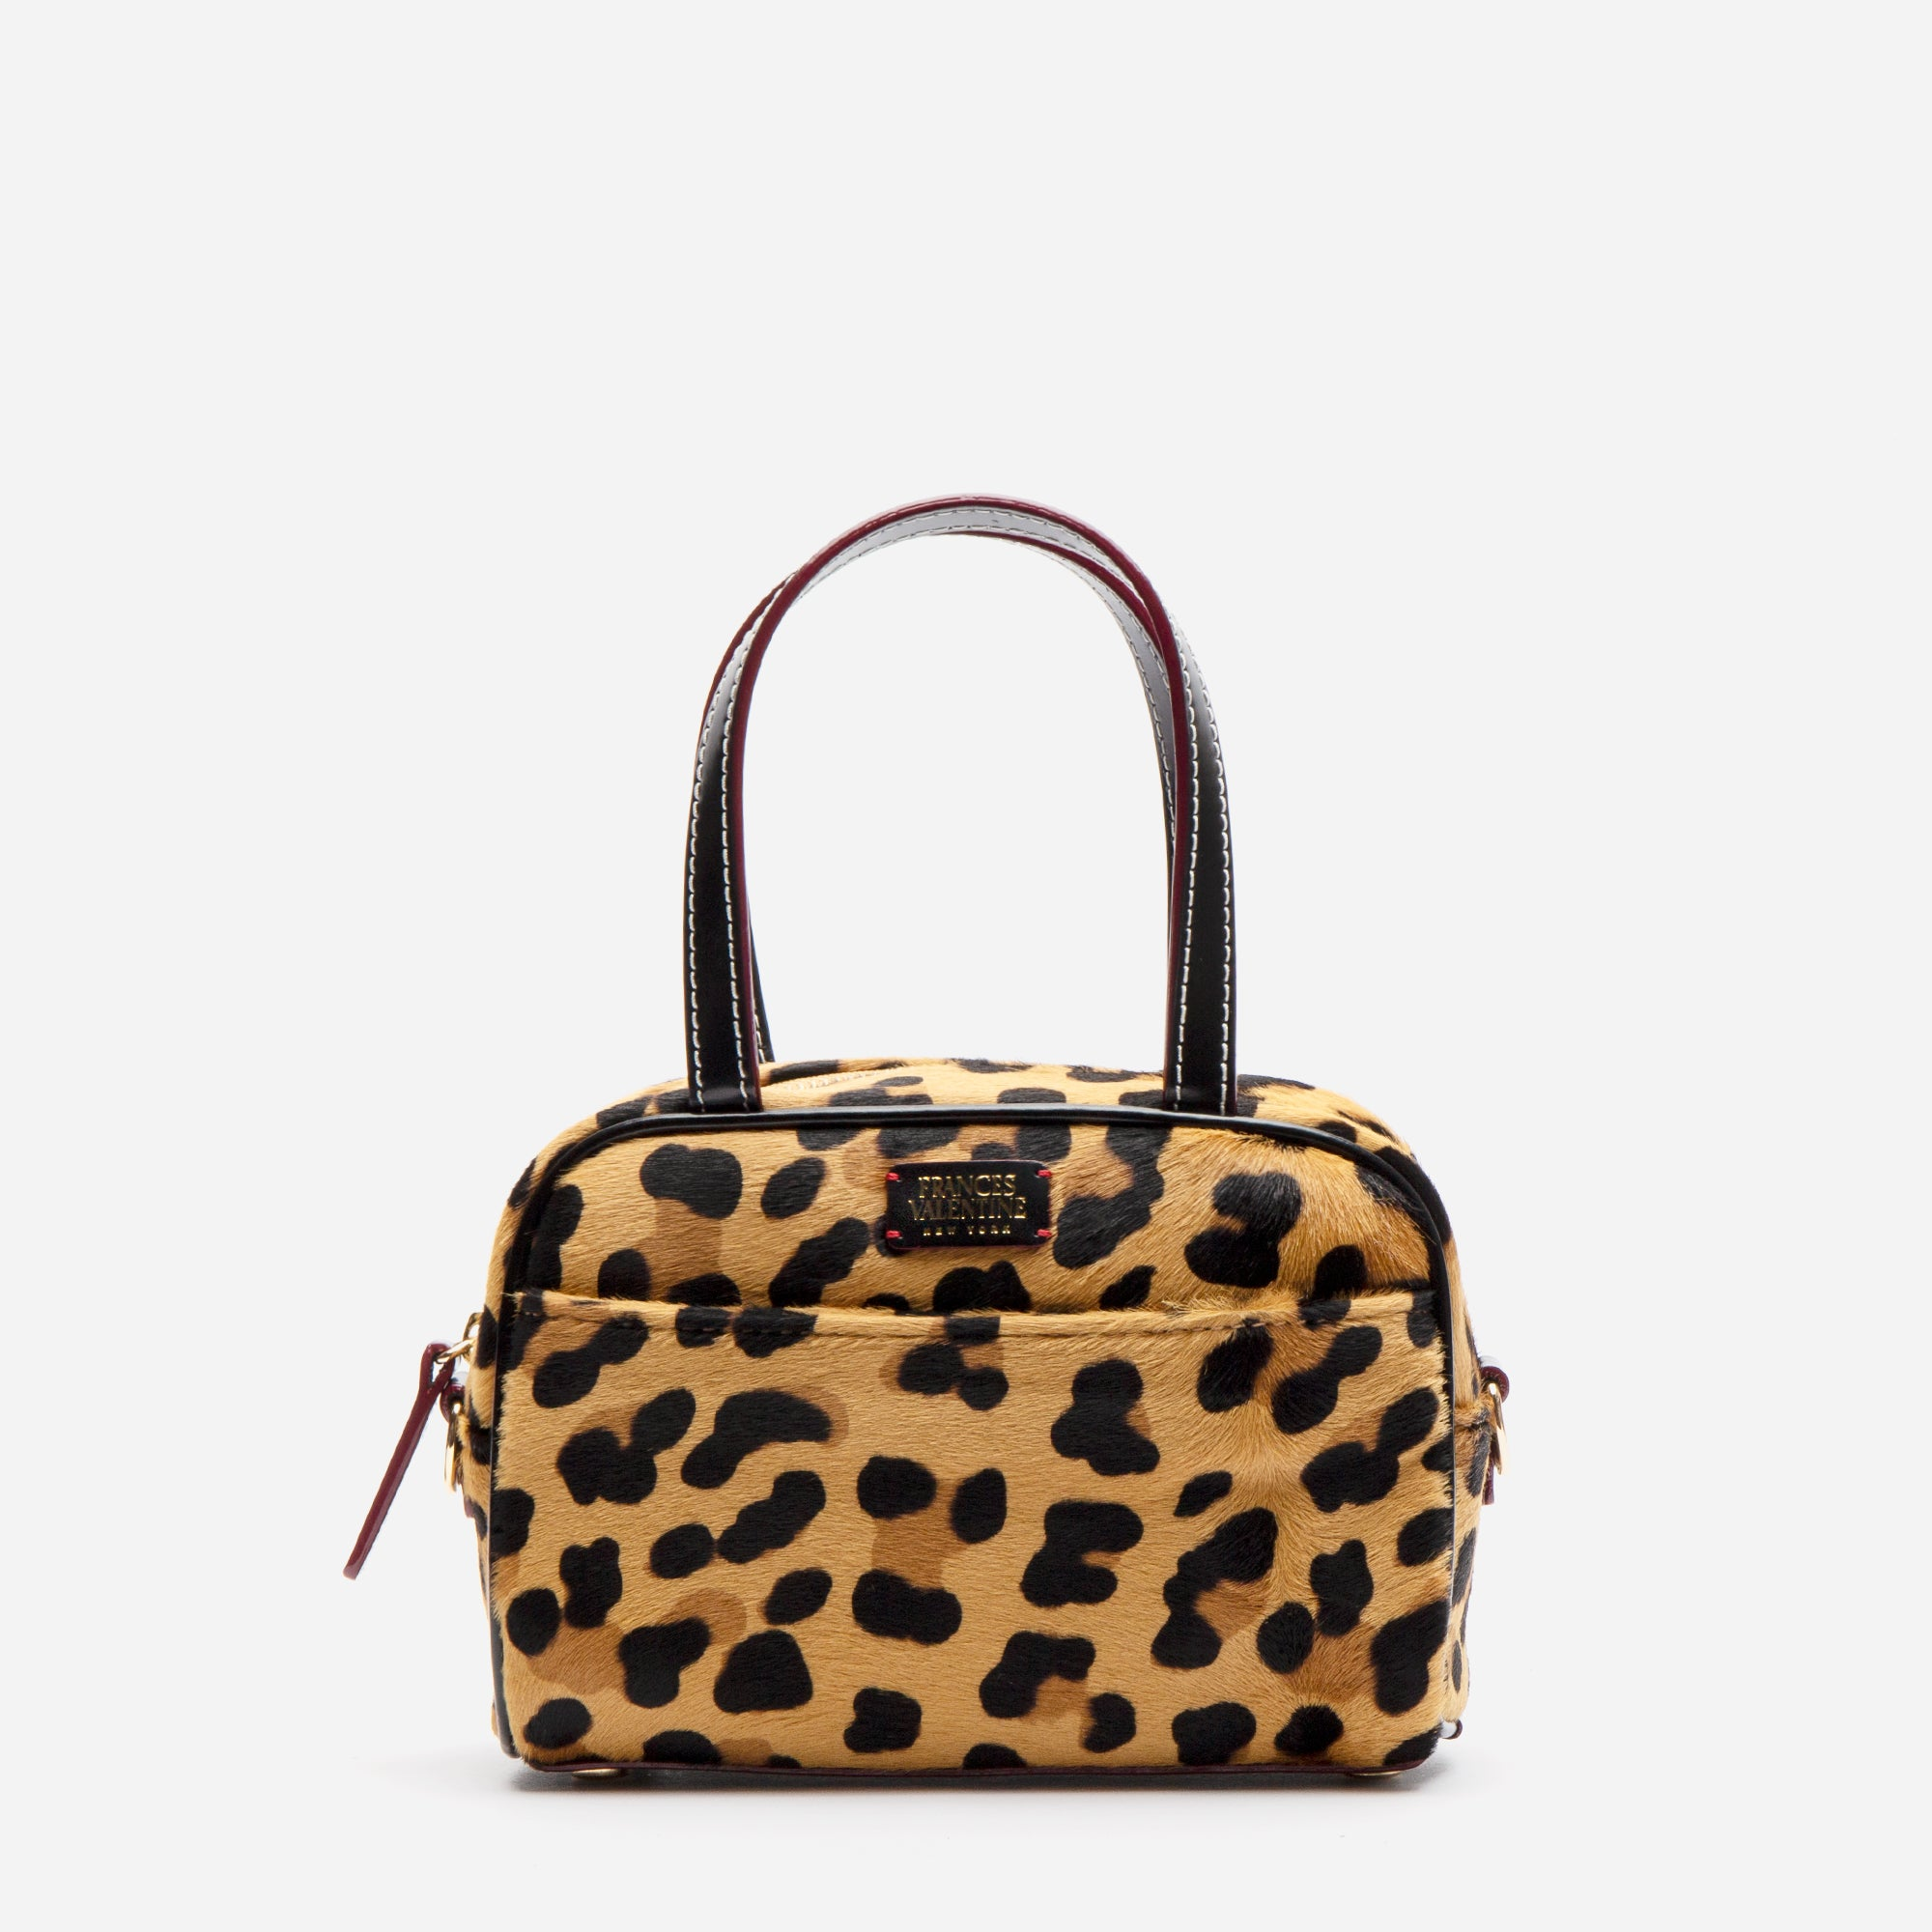 Baby Tote Leopard Printed Haircalf - Frances Valentine